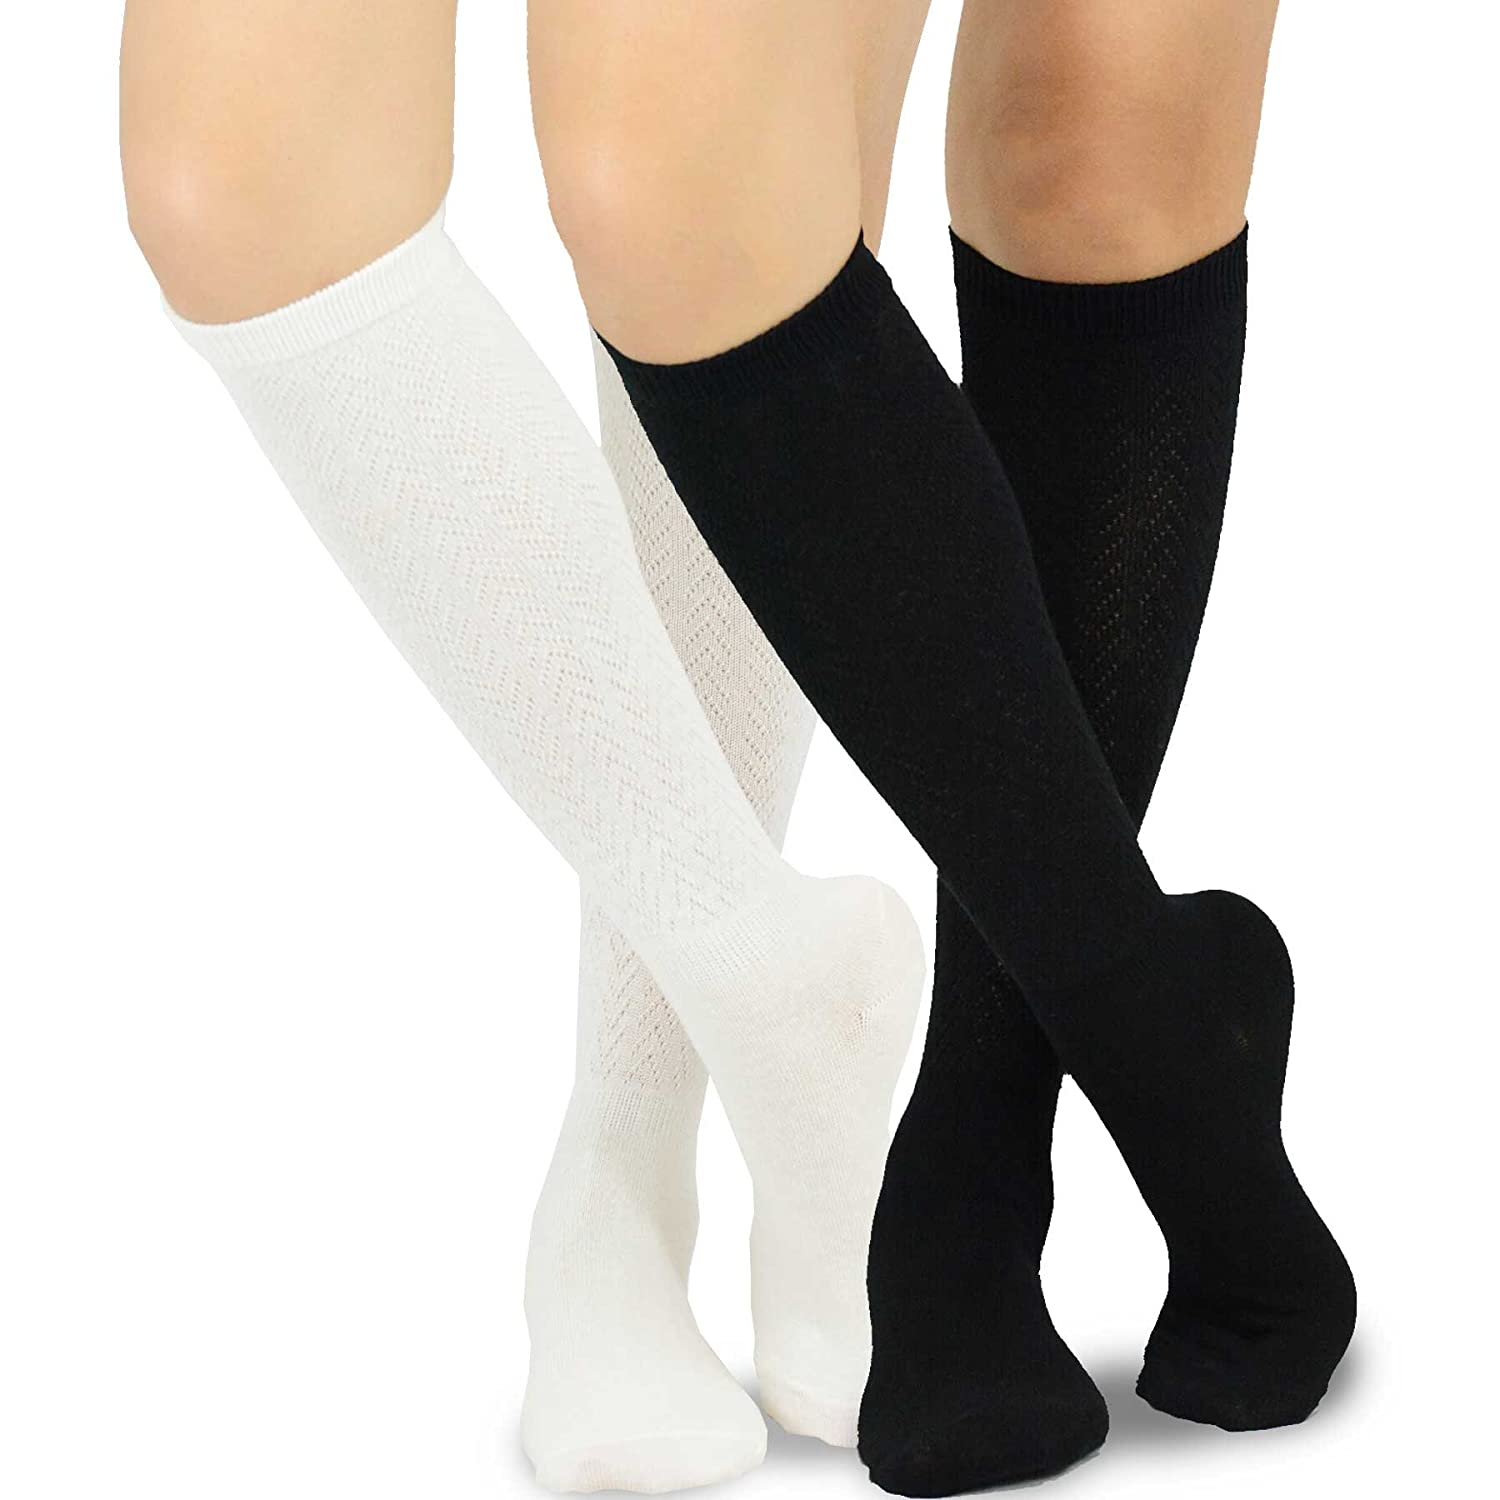 TeeHee Women's Fashion Knee High Socks - 2 Pairs Pack soxnet Inc S/10264-C08-2P